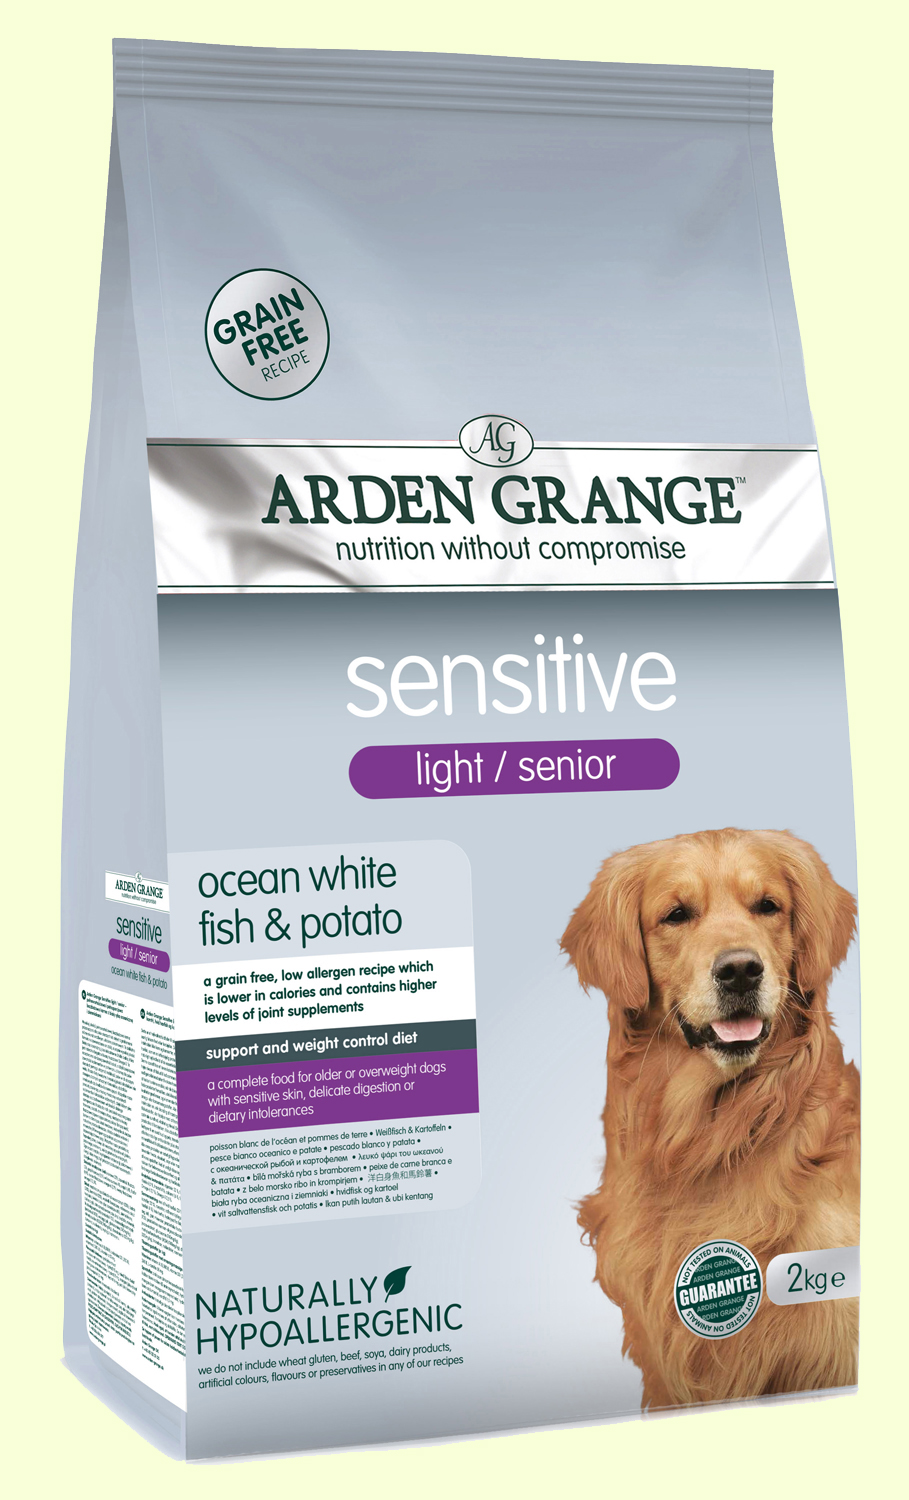 Arden Grange Sensitive Light/Senior Корм для пожилых тучных собак с аллергией